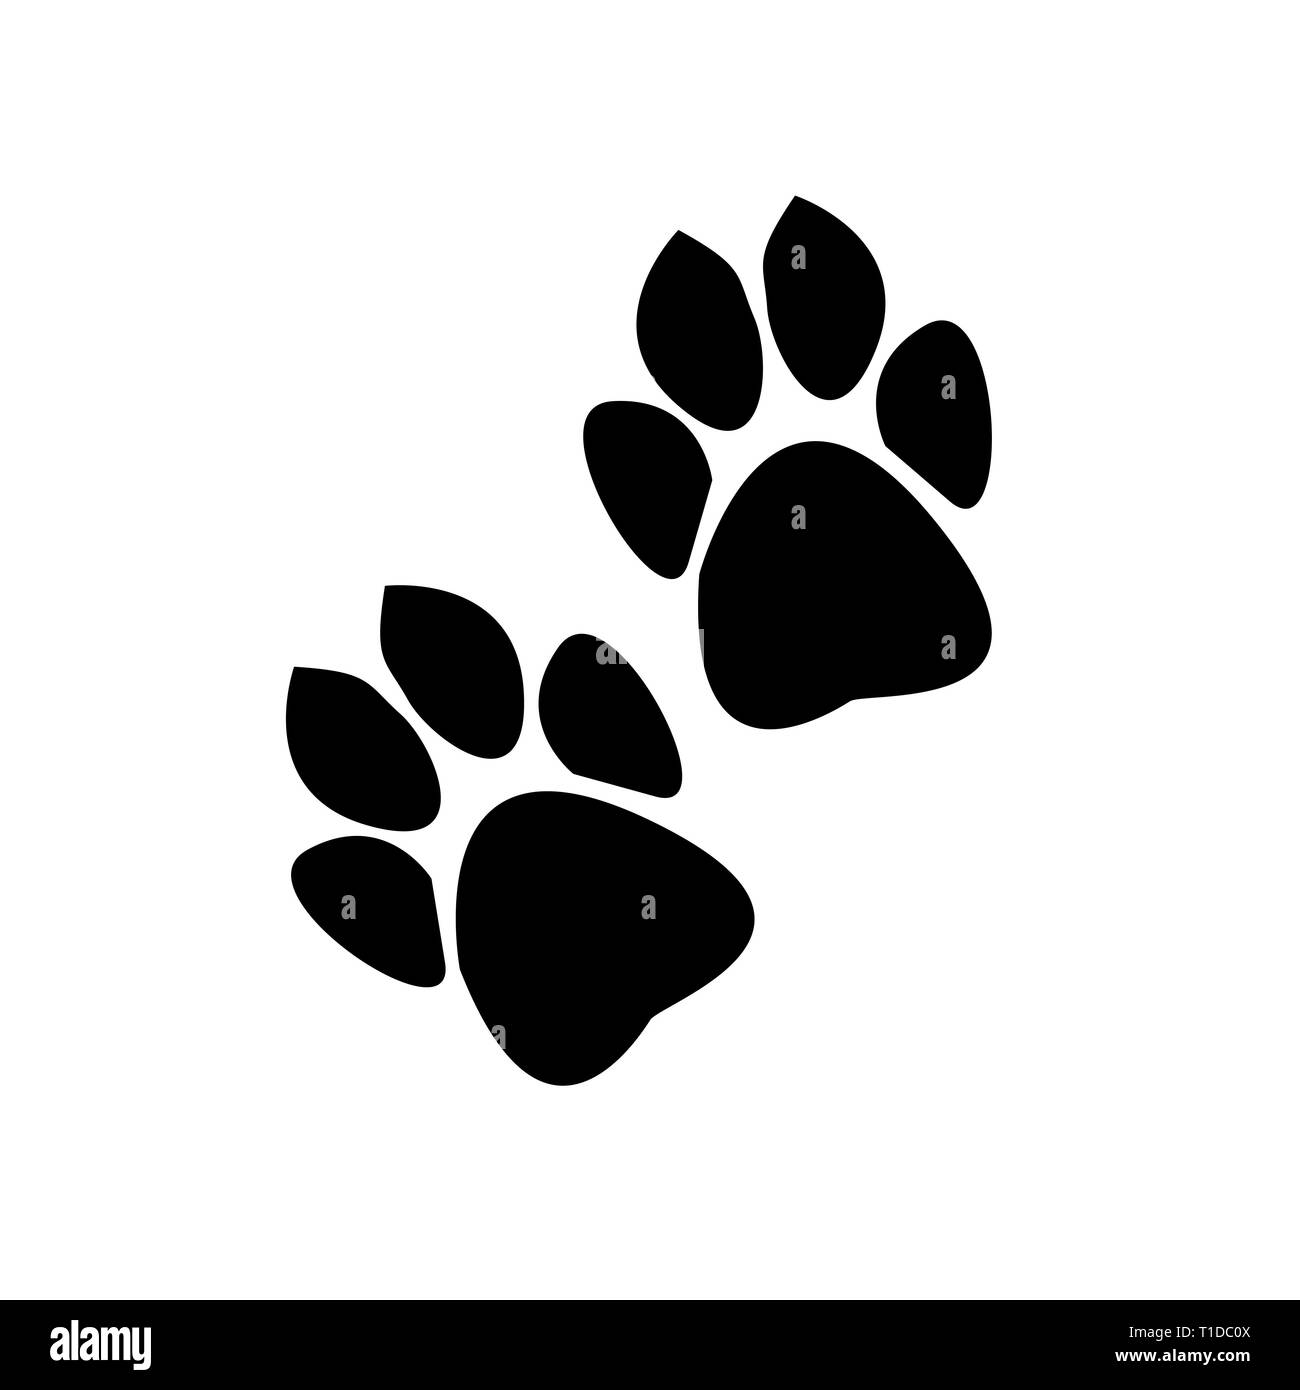 traces of animals on a white background - Stock Image